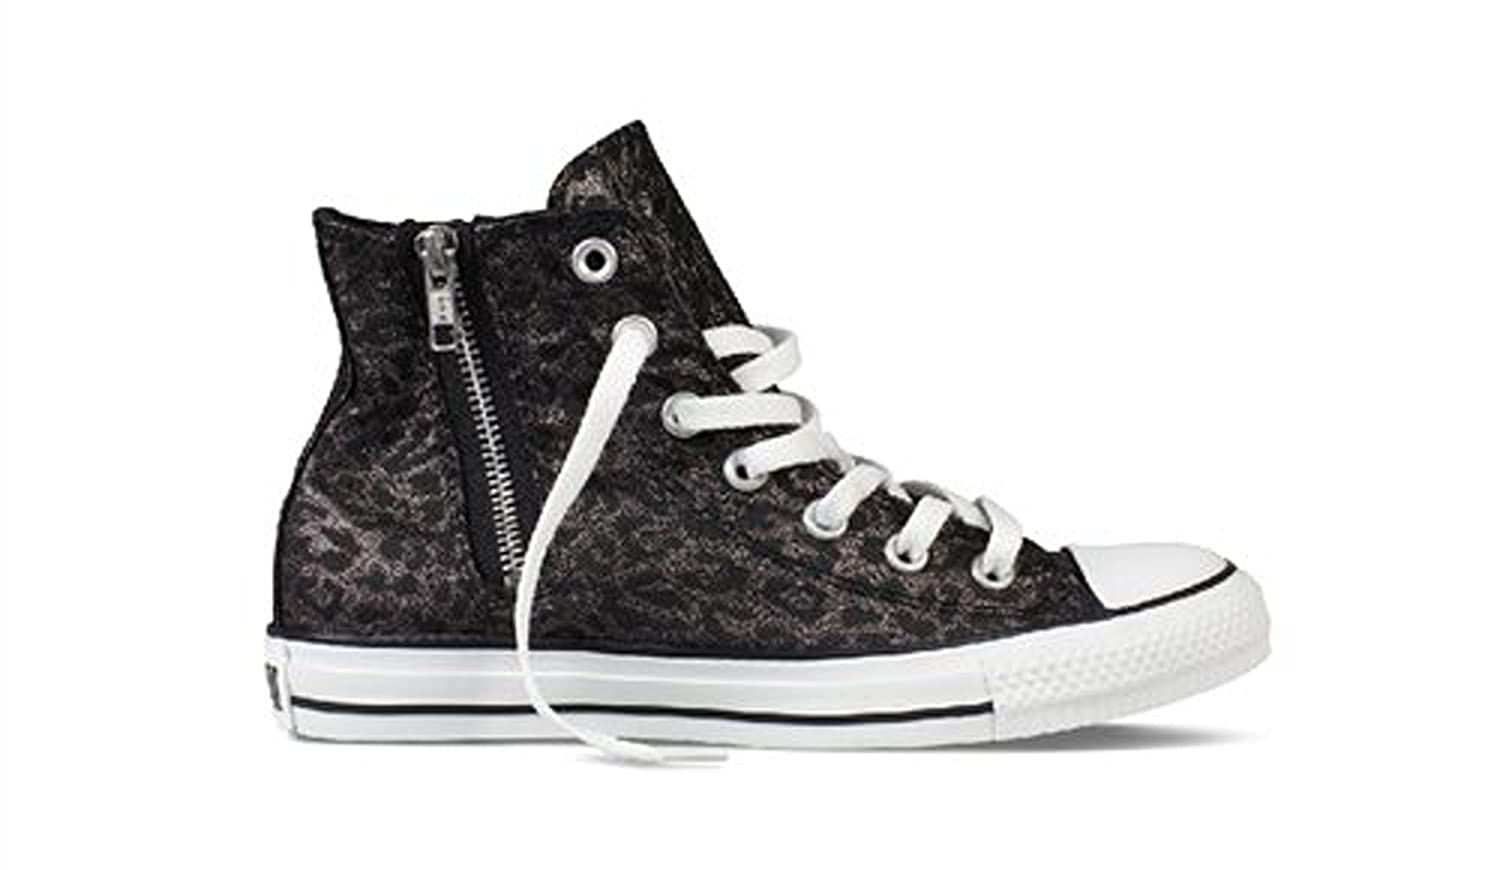 converse chuck taylor all star side zip